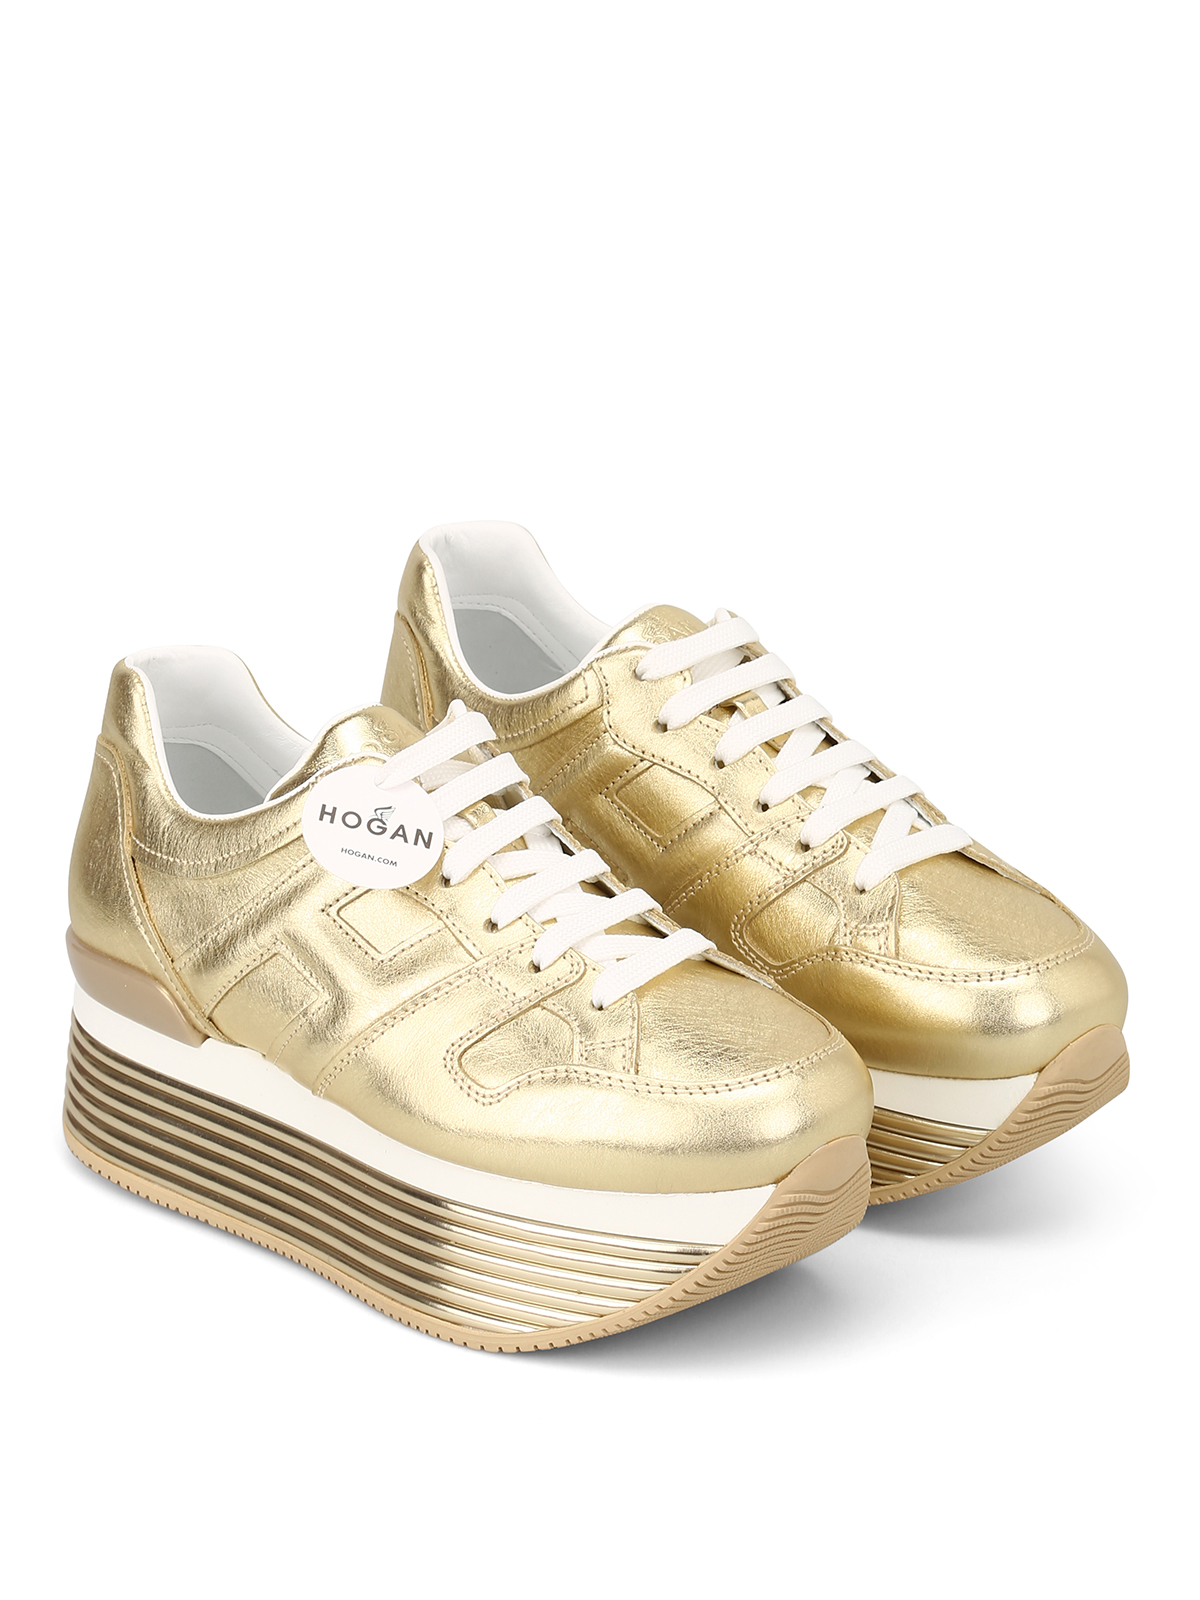 Trainers Hogan - H352 pale gold leather sneakers - HXW3520T548I6EG210